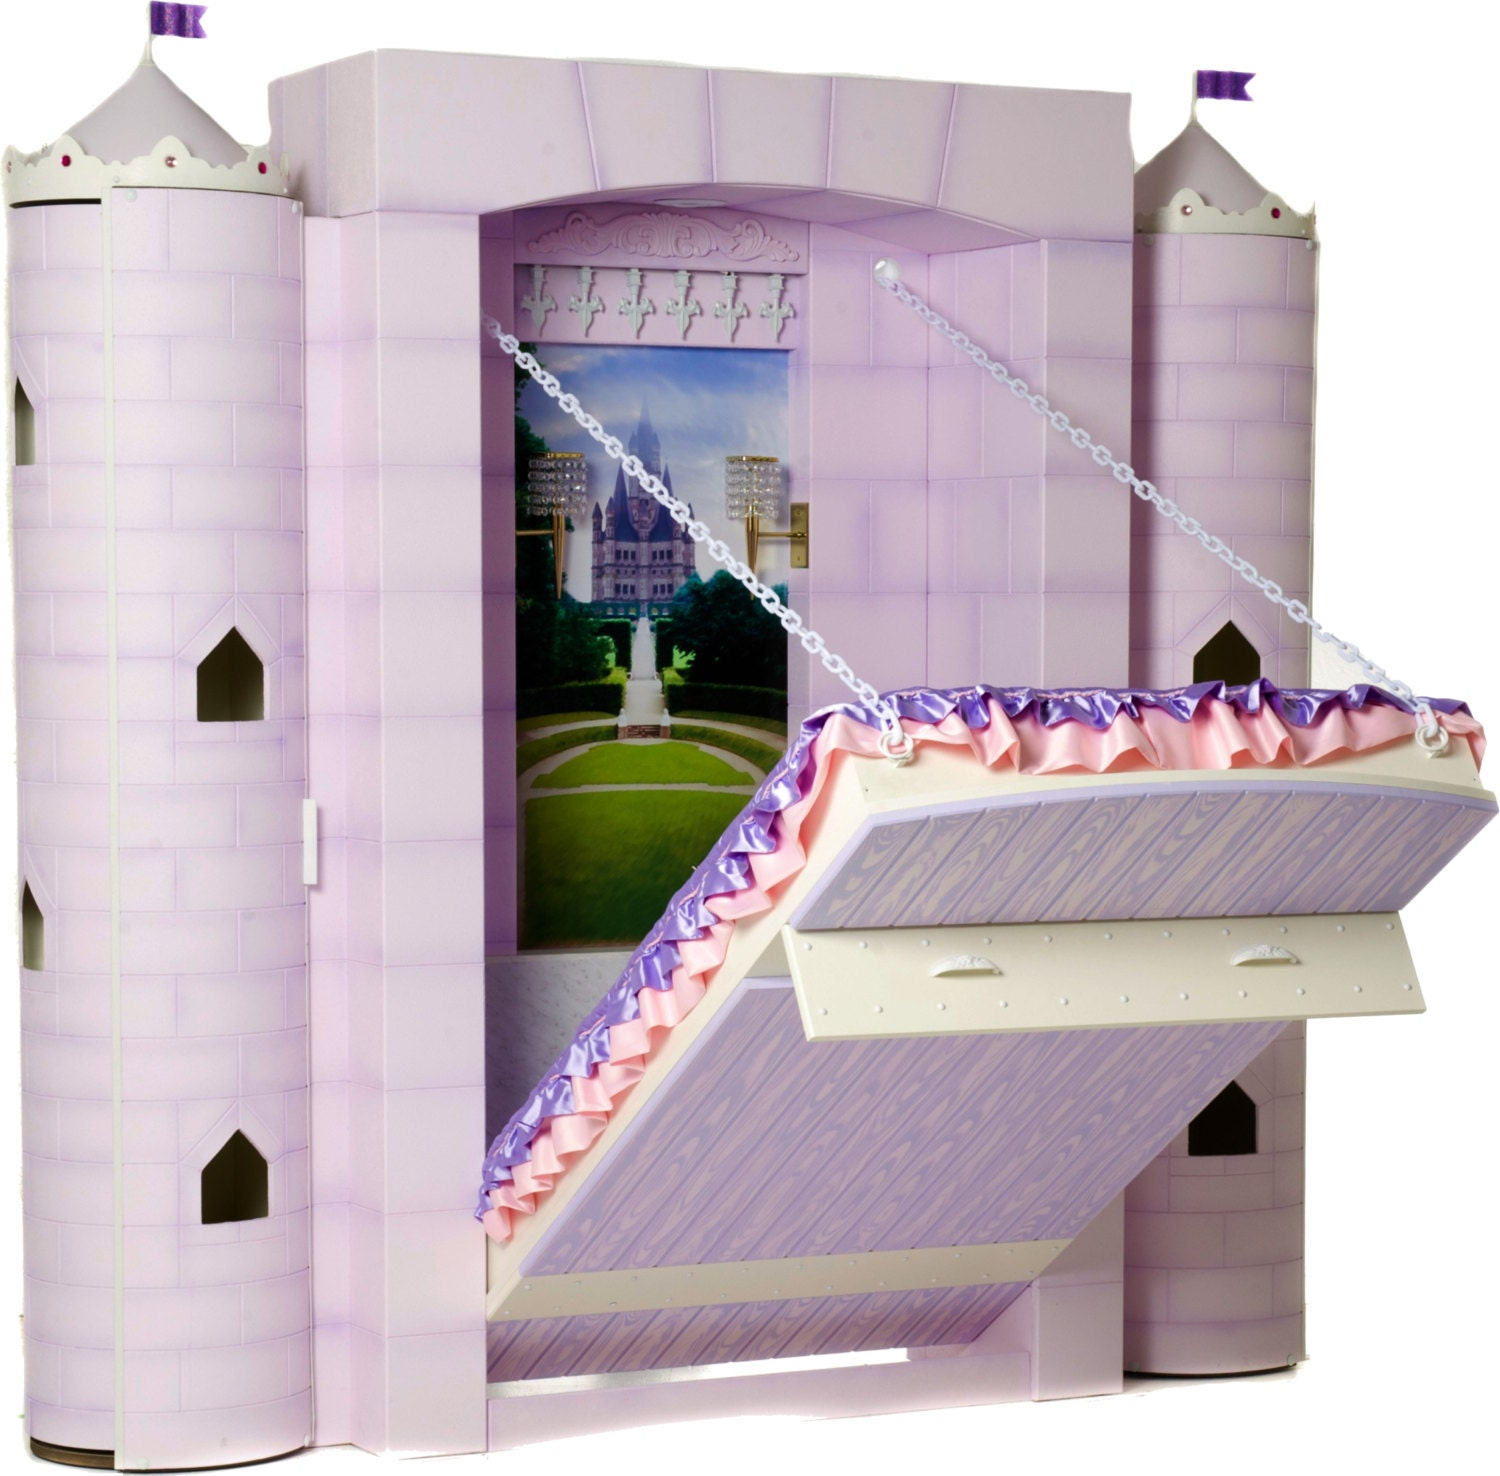 Princess Bed Castle Bed For Girl's Bedroom